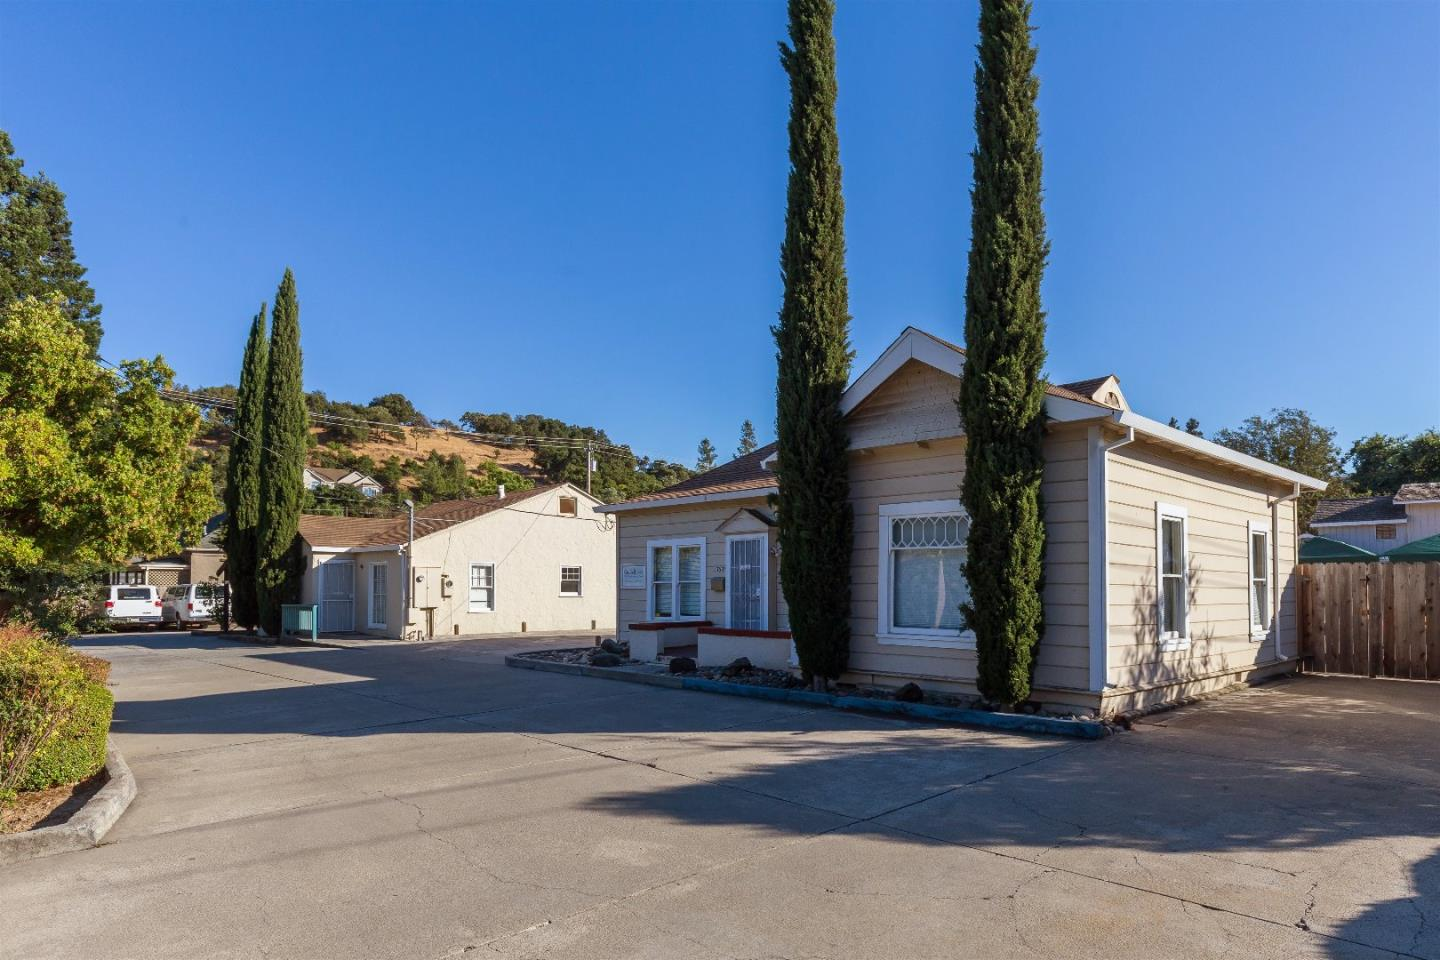 Commercial for Sale at 17525 Del Monte Avenue Morgan Hill, California 95037 United States